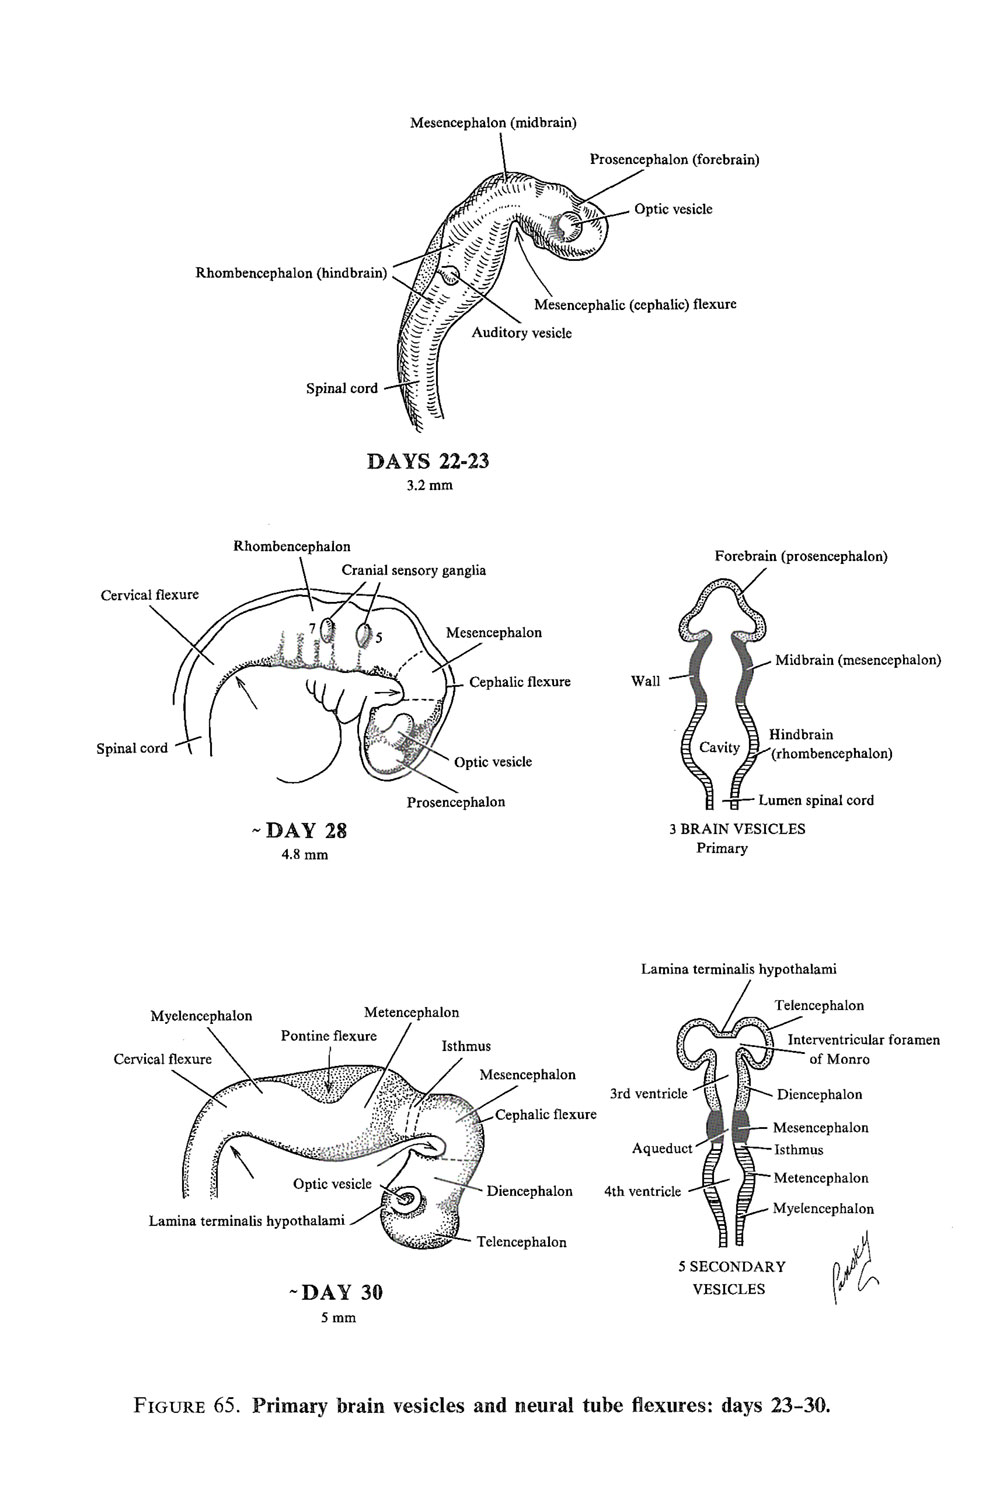 general development of  the central nervous system: image #2